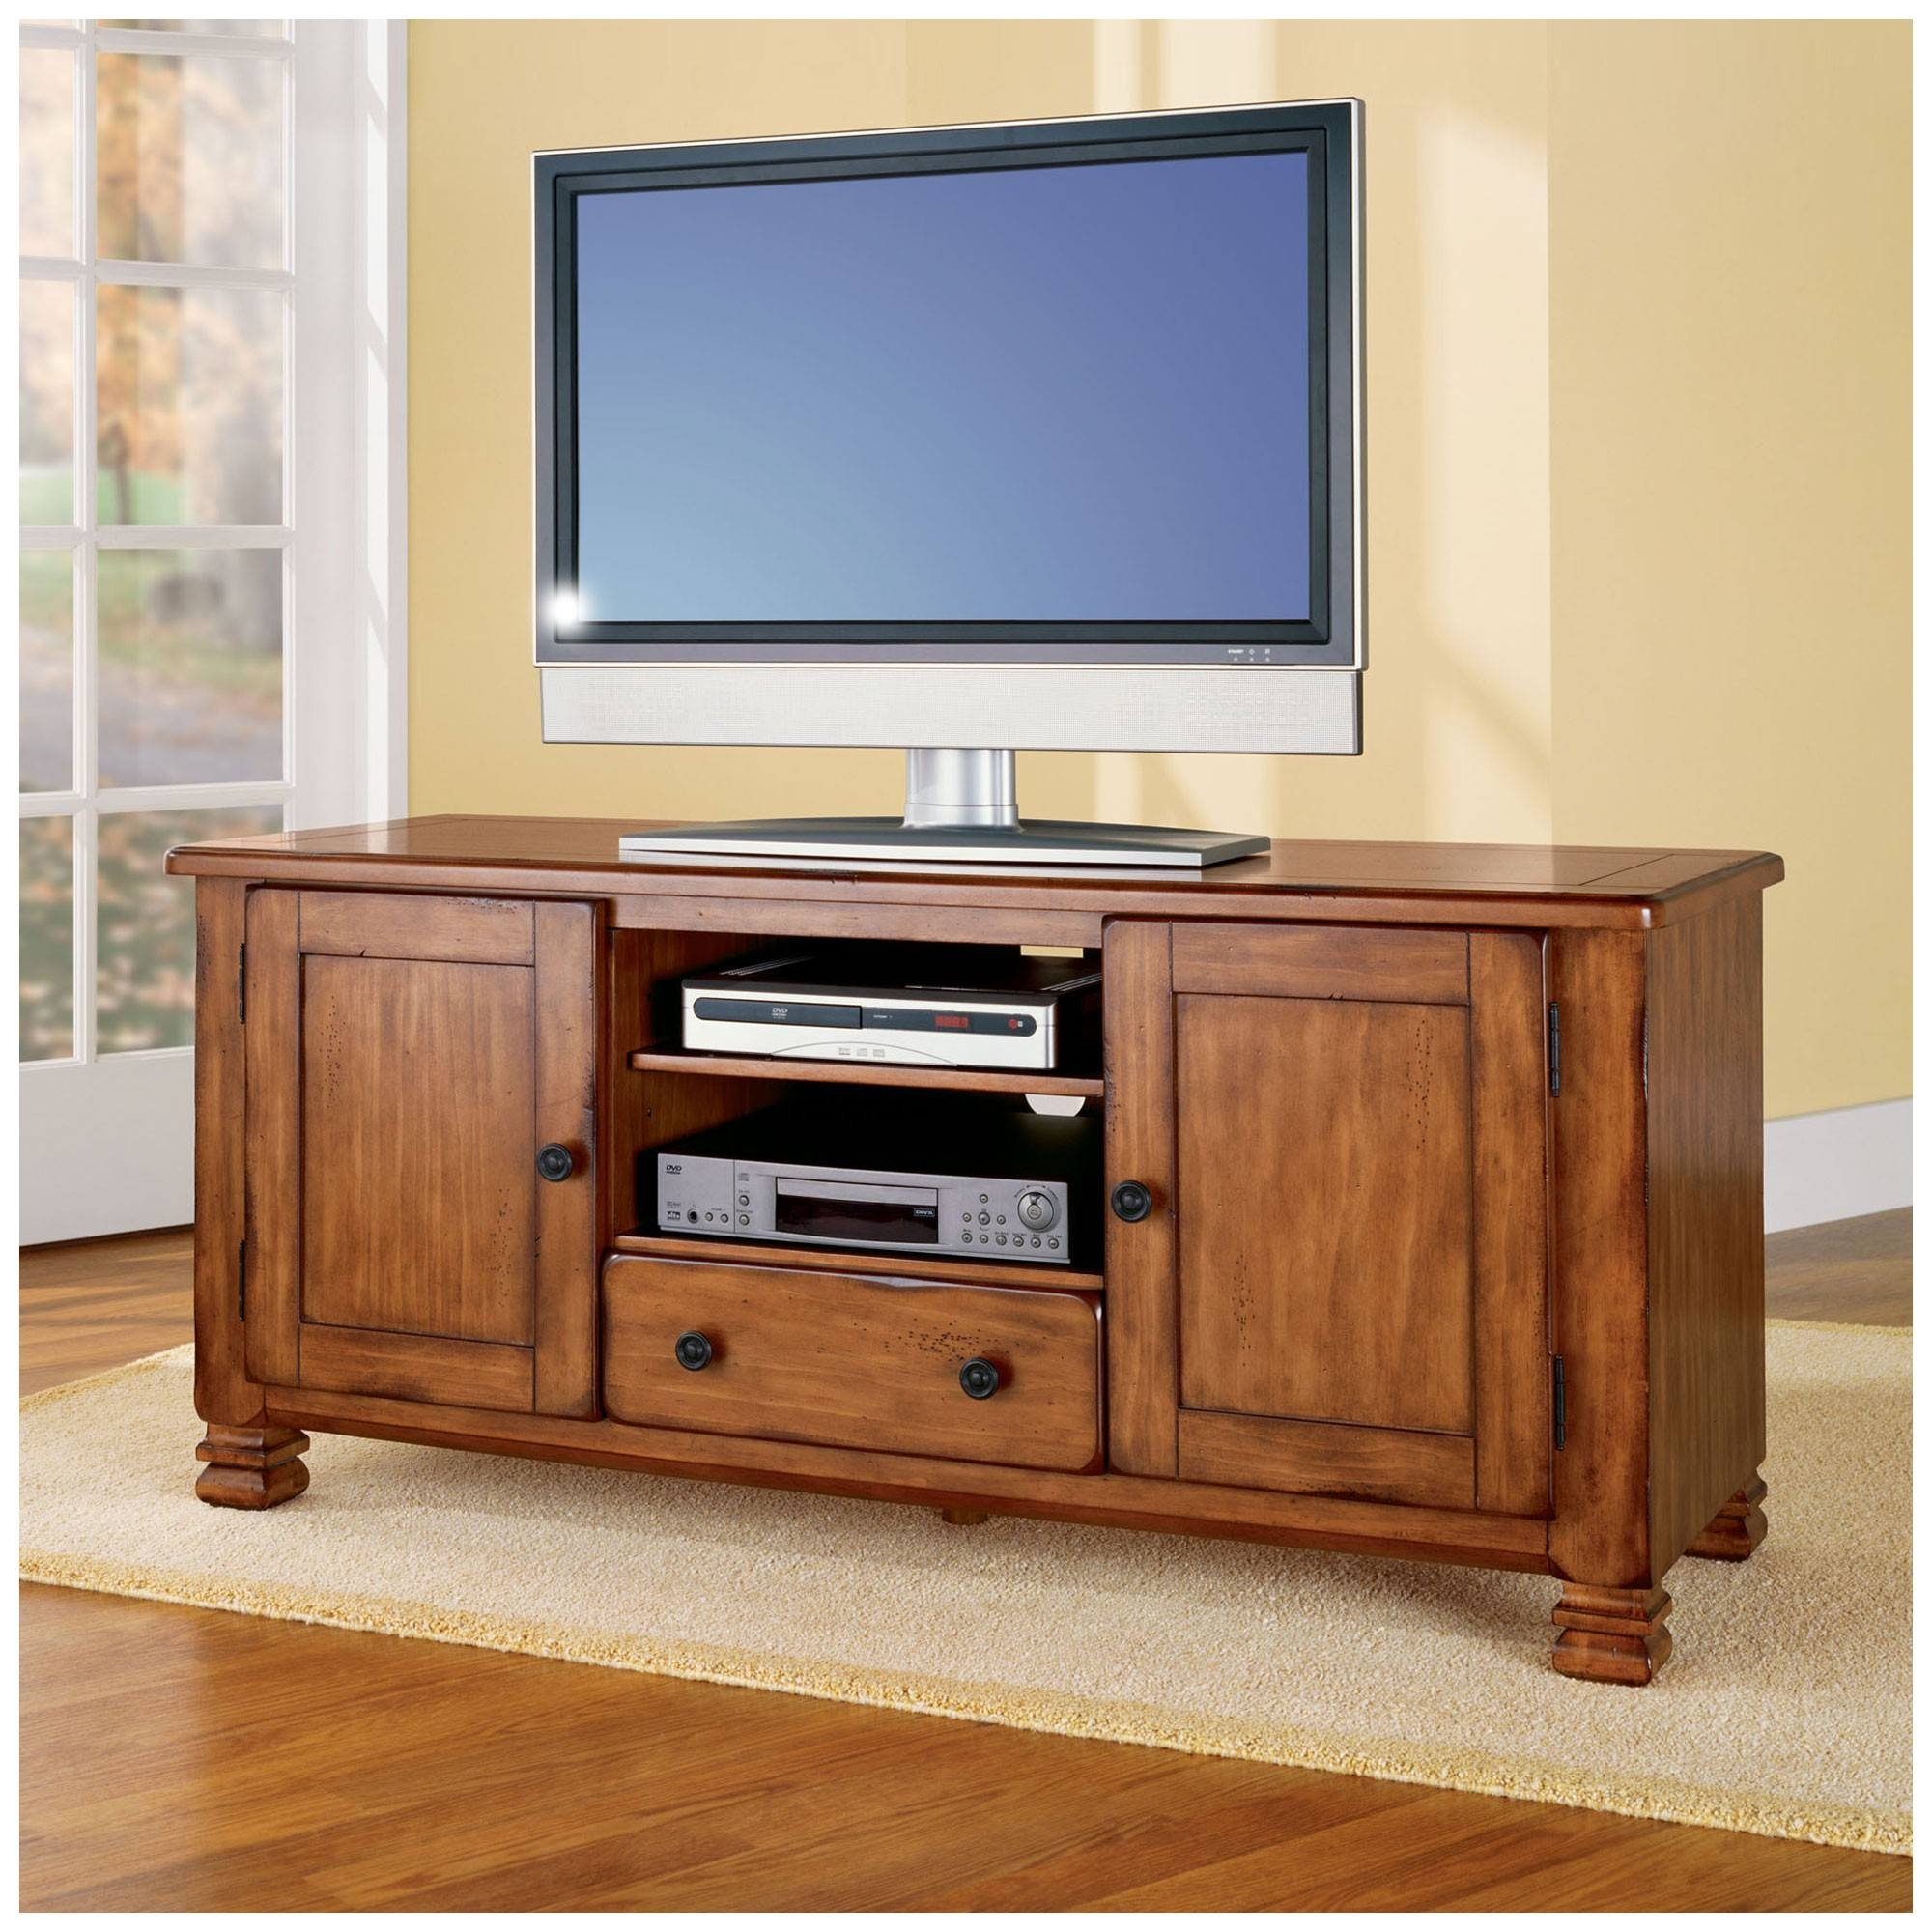 Design Cherry Wood Tv Stand Ideas #17098 within Cherry Wood Tv Stands (Image 9 of 15)